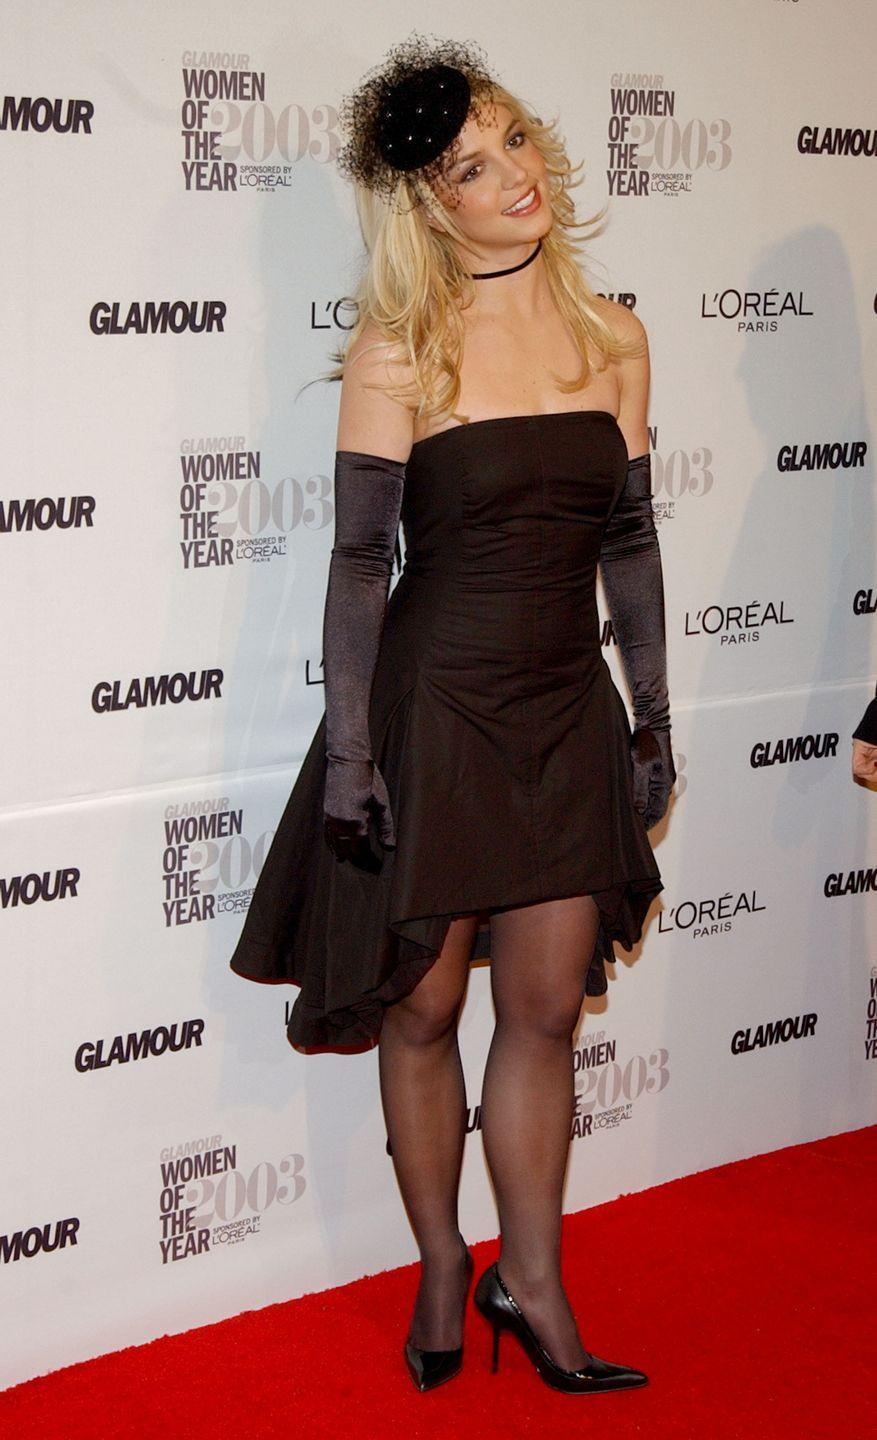 <p>A lesser-known-but-still-true fact: The British royal family only started wearing fascinators because of Britney Spears. When will Kate Middleton wear a choker though?</p>